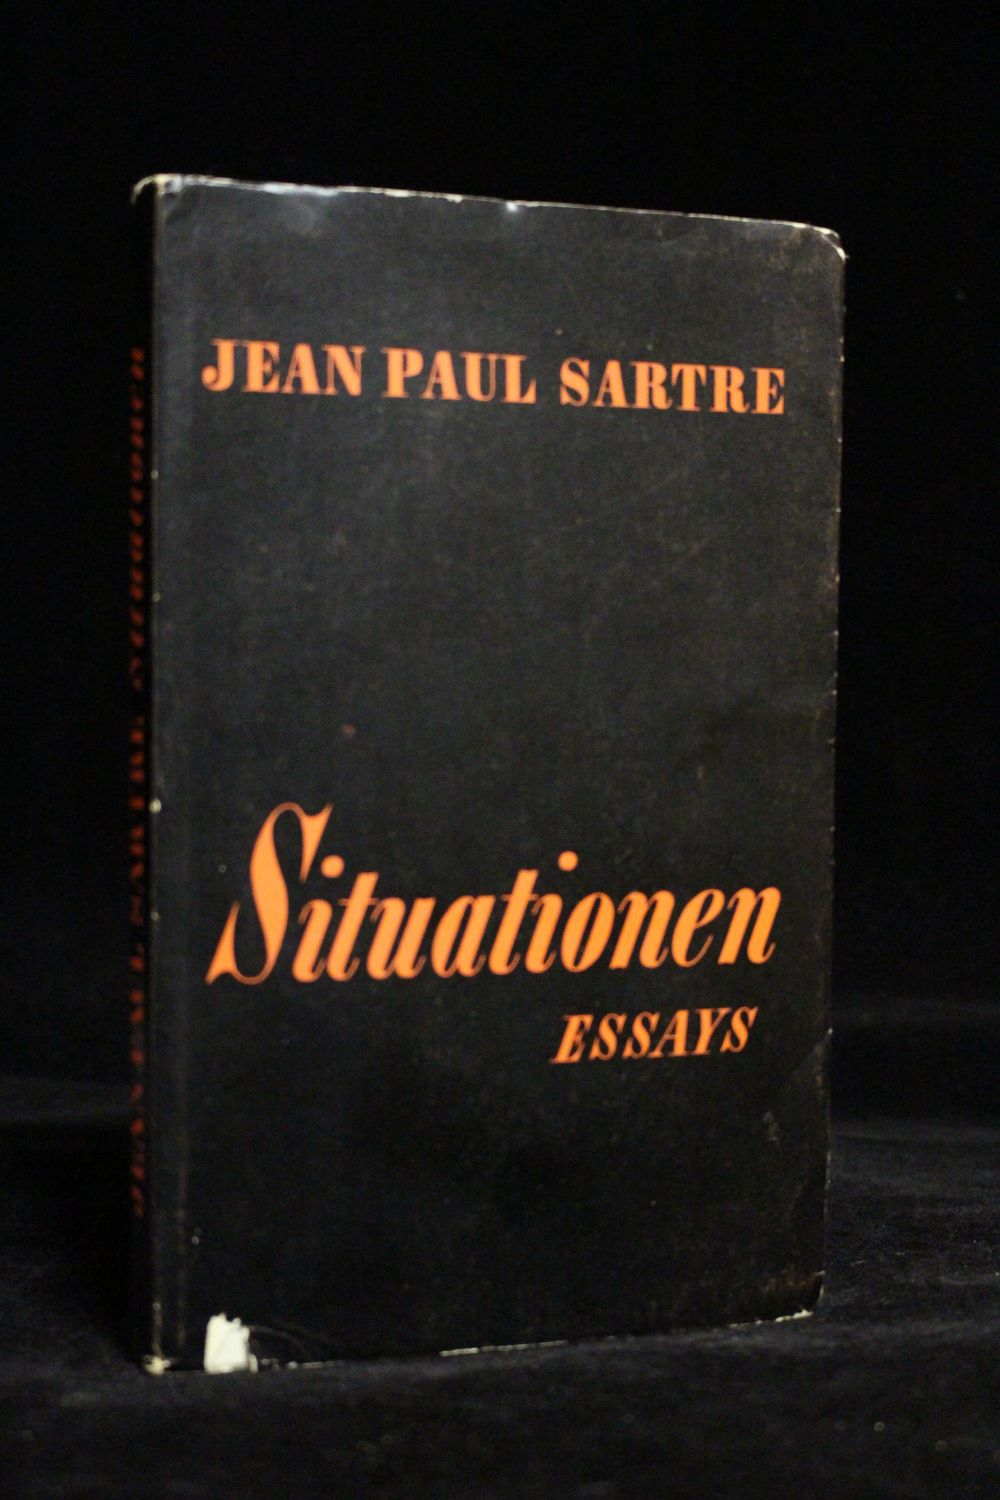 jean paul sartre essays Immediately download the no exit summary, chapter-by-chapter analysis, book notes, essays, quotes, character descriptions, lesson plans, and more no exit summary jean-paul sartre's no exit is considered by many to be the author's best play and most accessible dramatization of his philosophy.